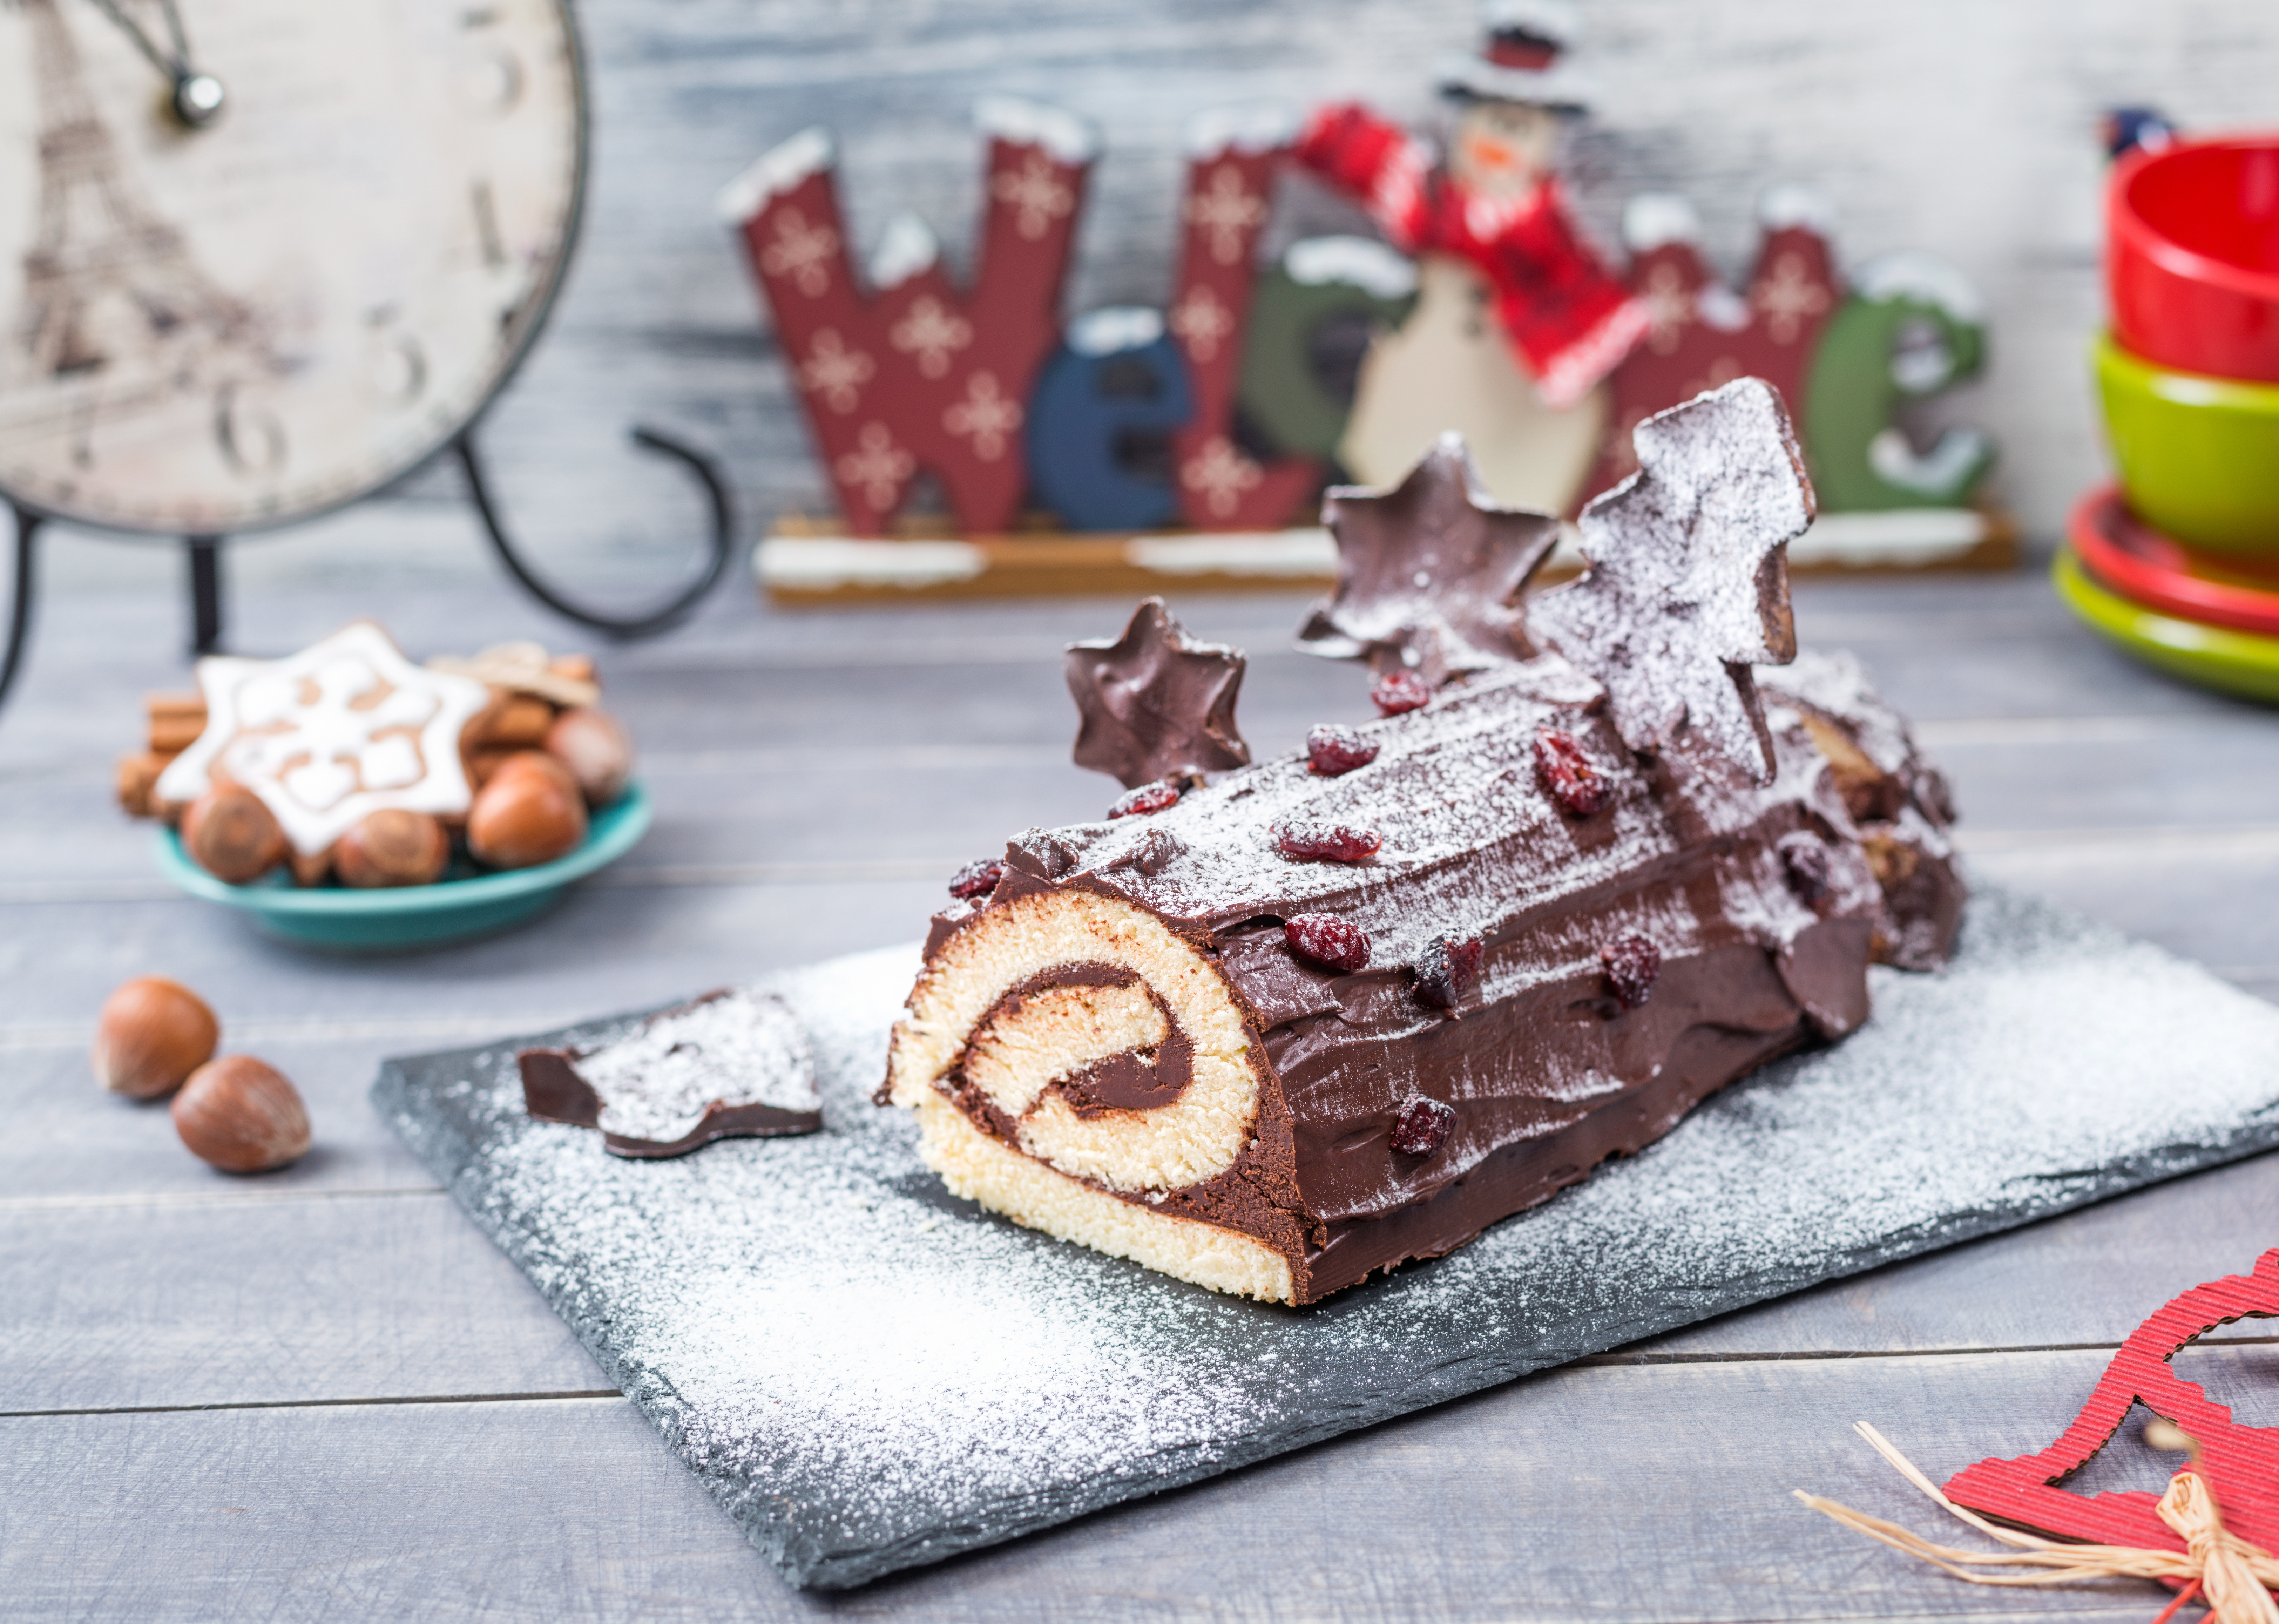 Cakes Bush de Noel Christmas Log home kitchen on New Year decorated wooden background